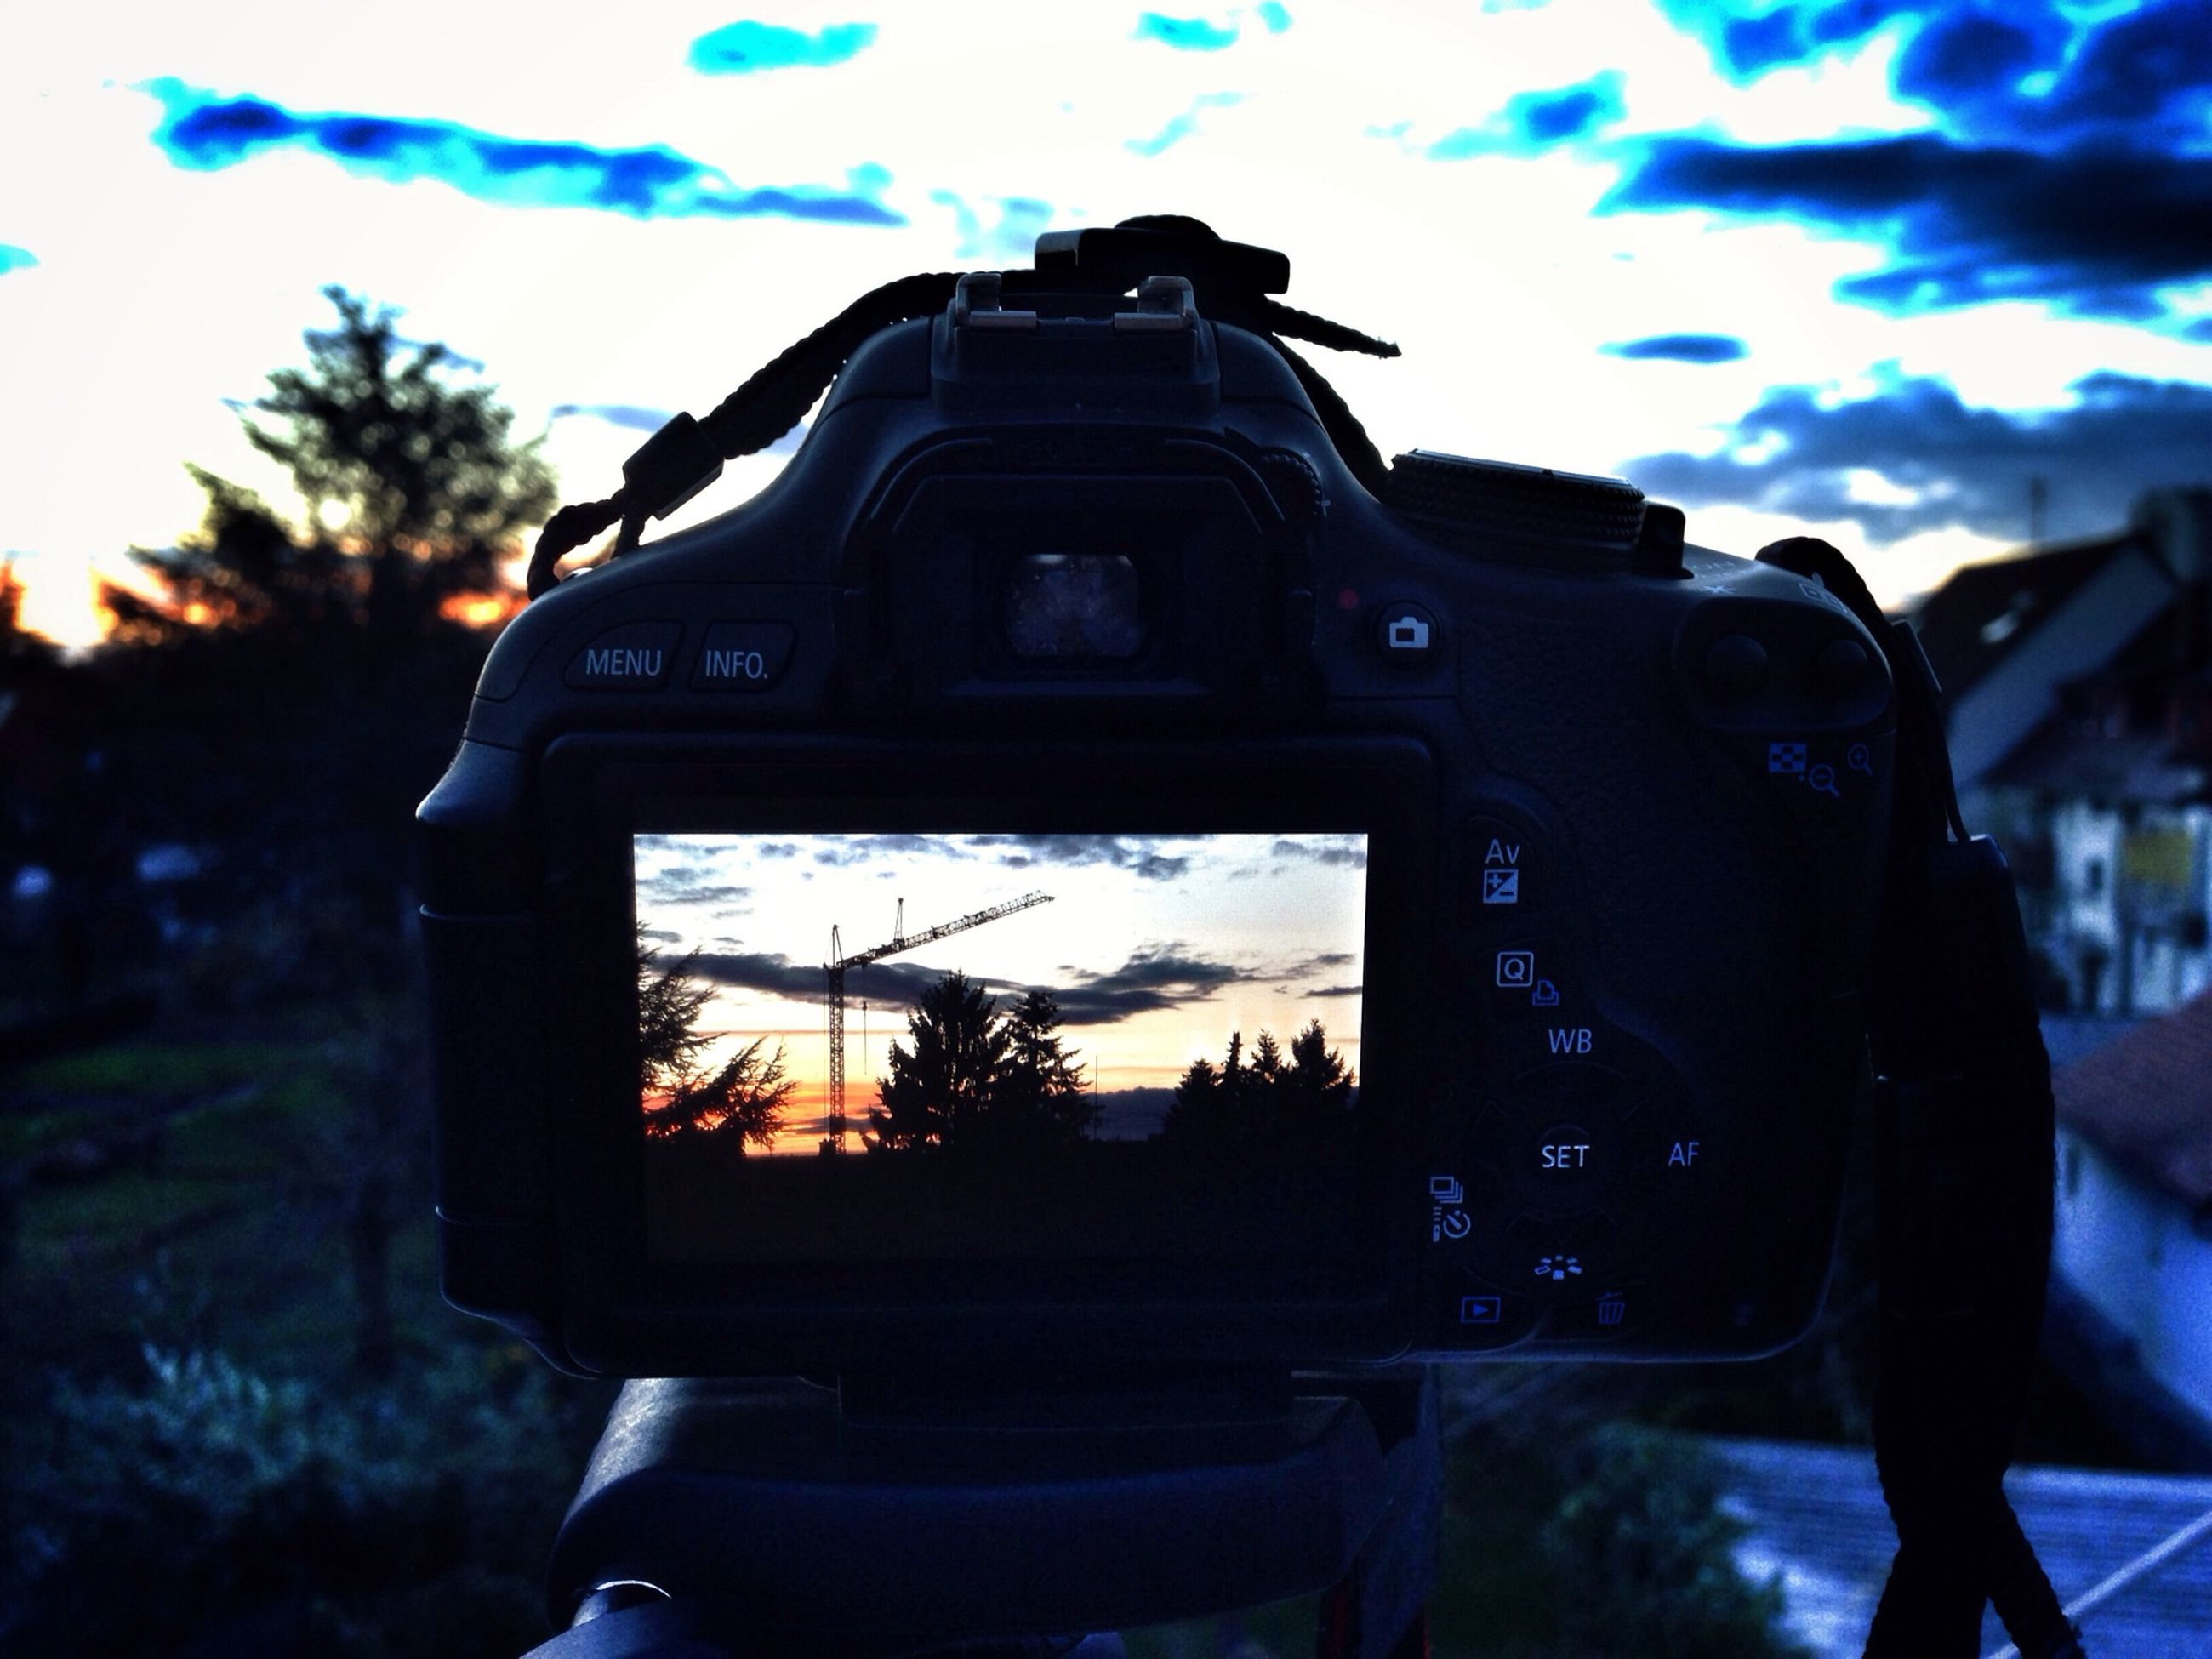 sky, sunset, tree, silhouette, cloud - sky, cloud, dusk, focus on foreground, technology, outdoors, low angle view, land vehicle, building exterior, close-up, nature, built structure, one person, sunlight, photography themes